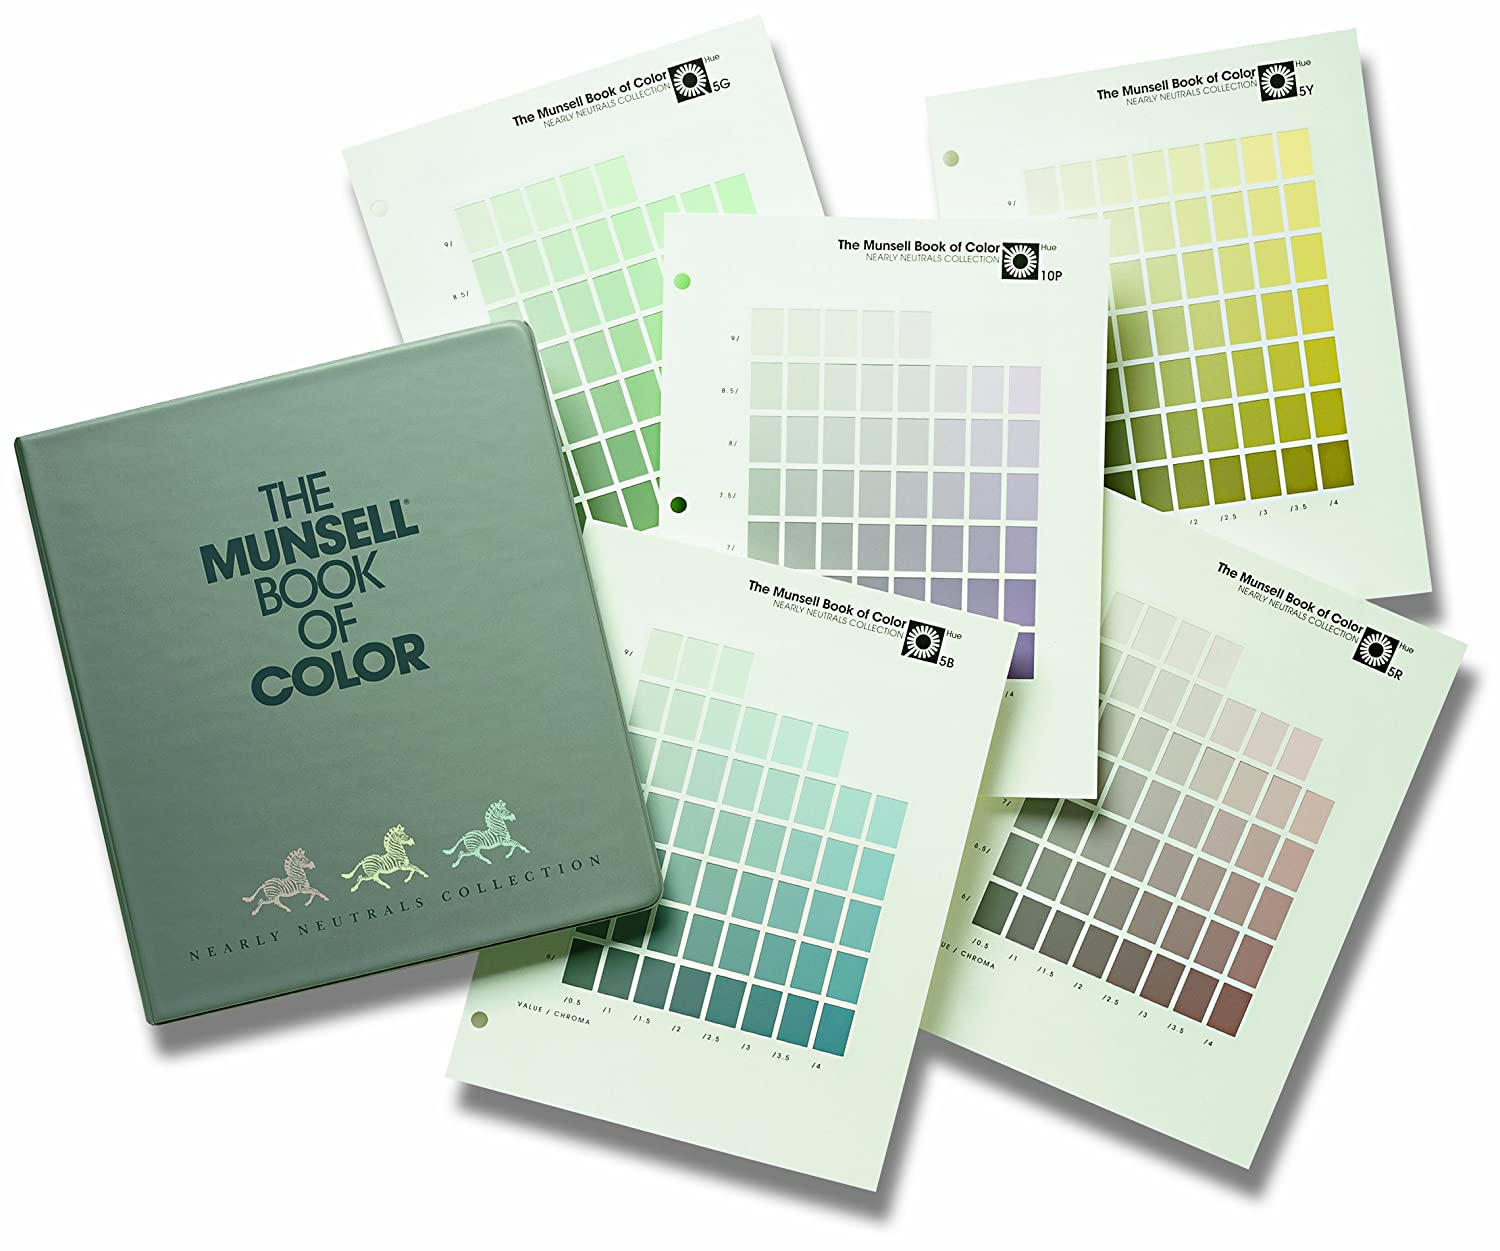 x rite munsell m40328b book of color nearly neutrals photo studio support equipment amazoncom - Munsell Color Book